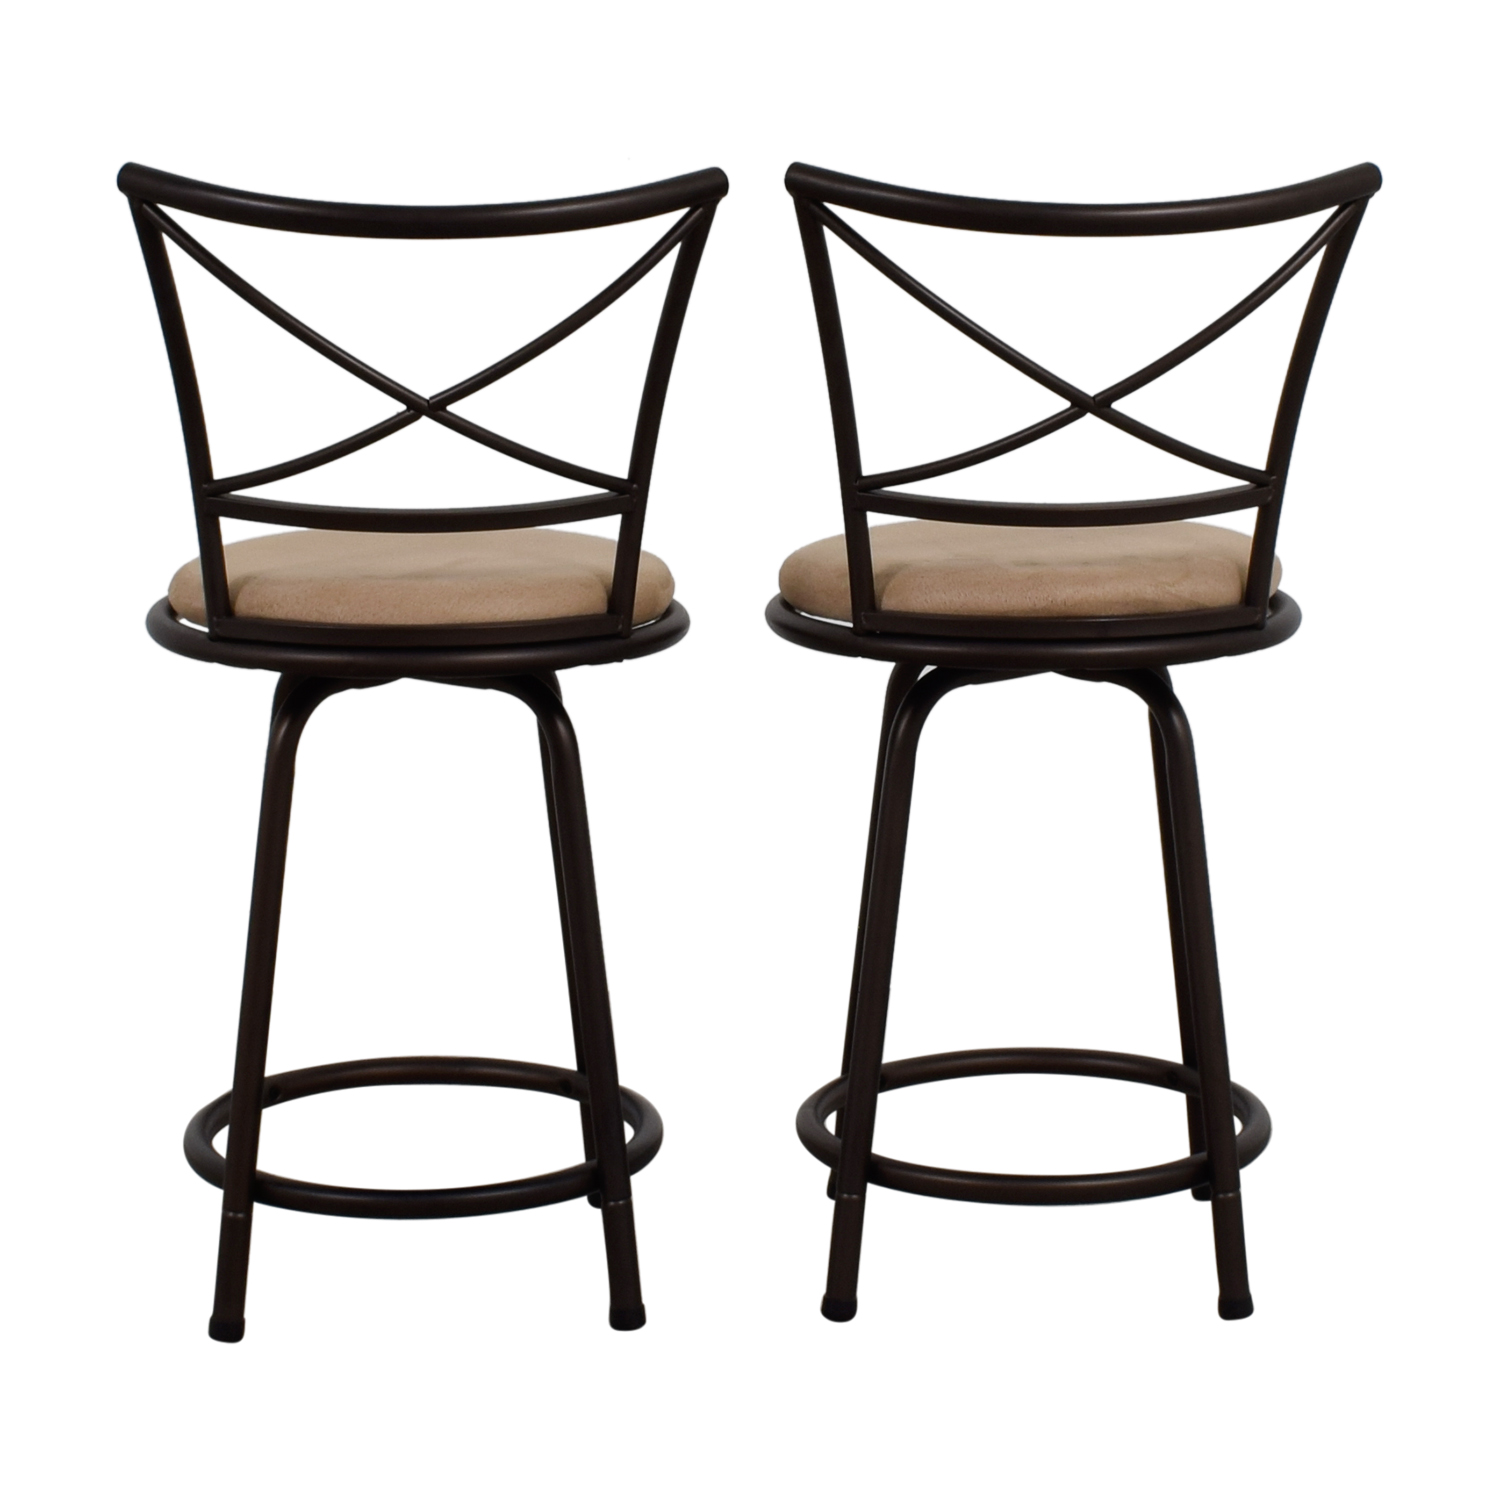 Big Lots Big Lots Tan Cushioned Swivel Barstools price